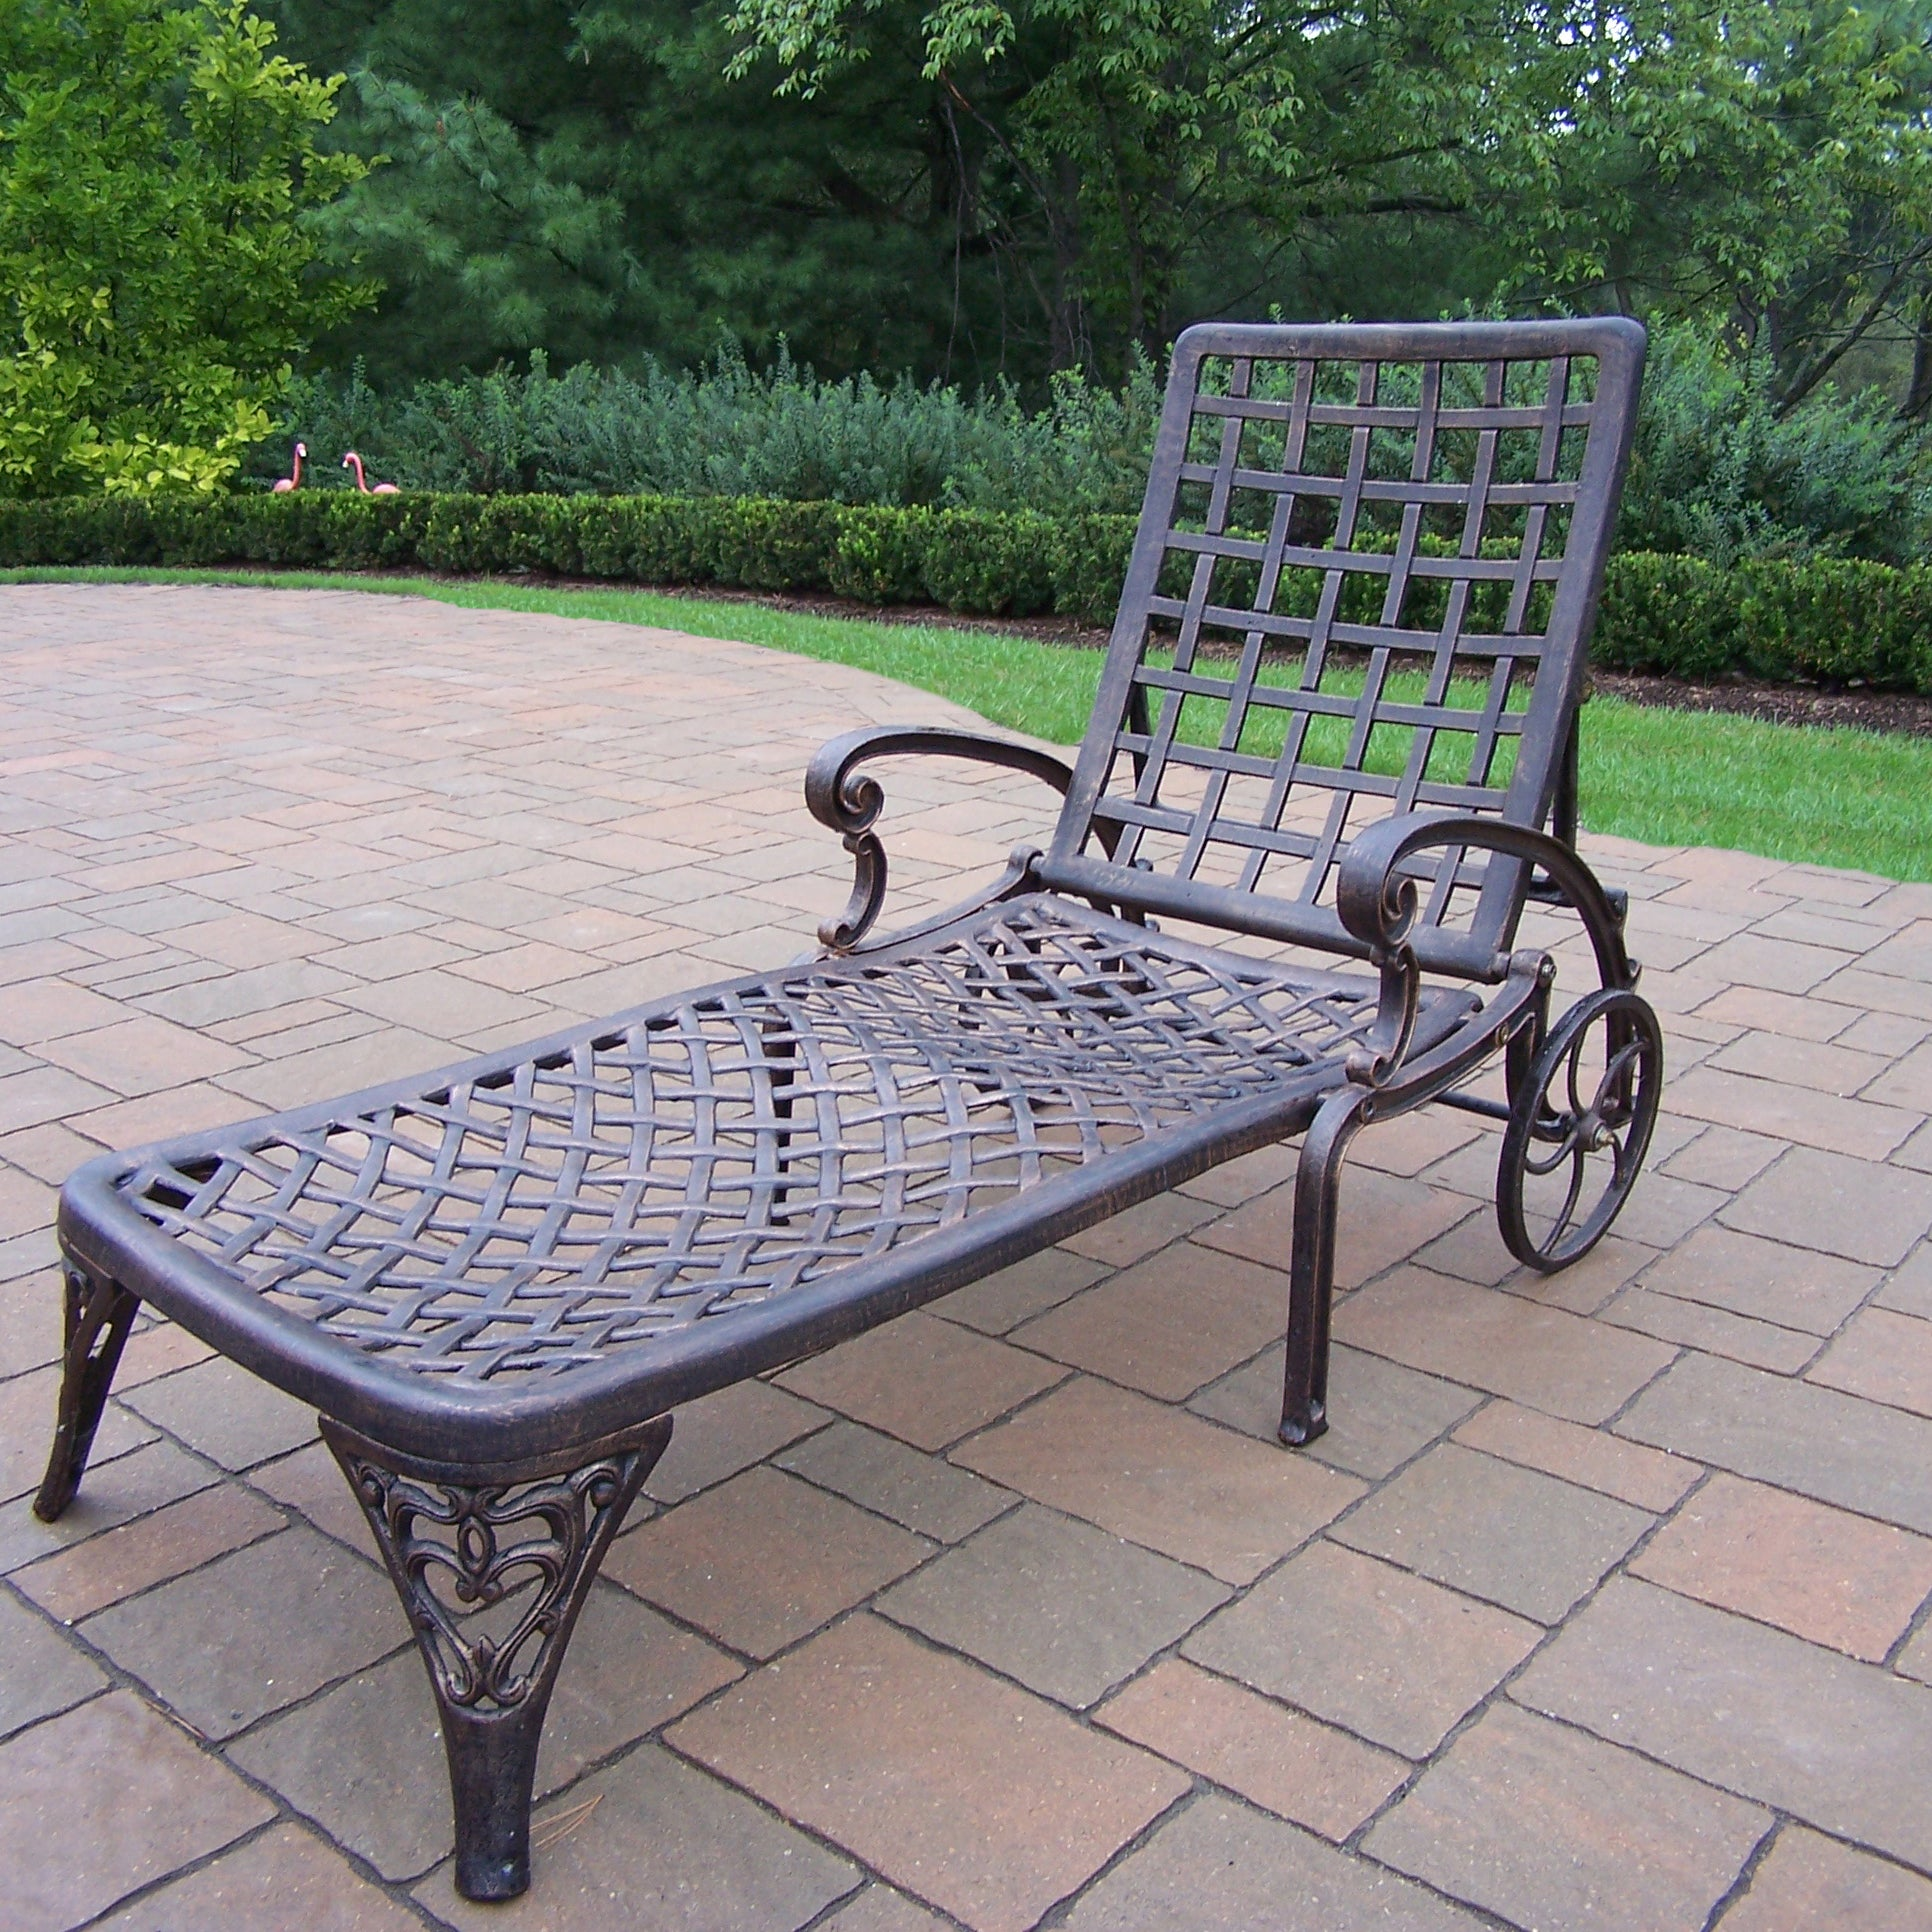 cl oatmeal lounge cushion lounges p hampton cast chaise outdoor metal aluminum cavasso bay with